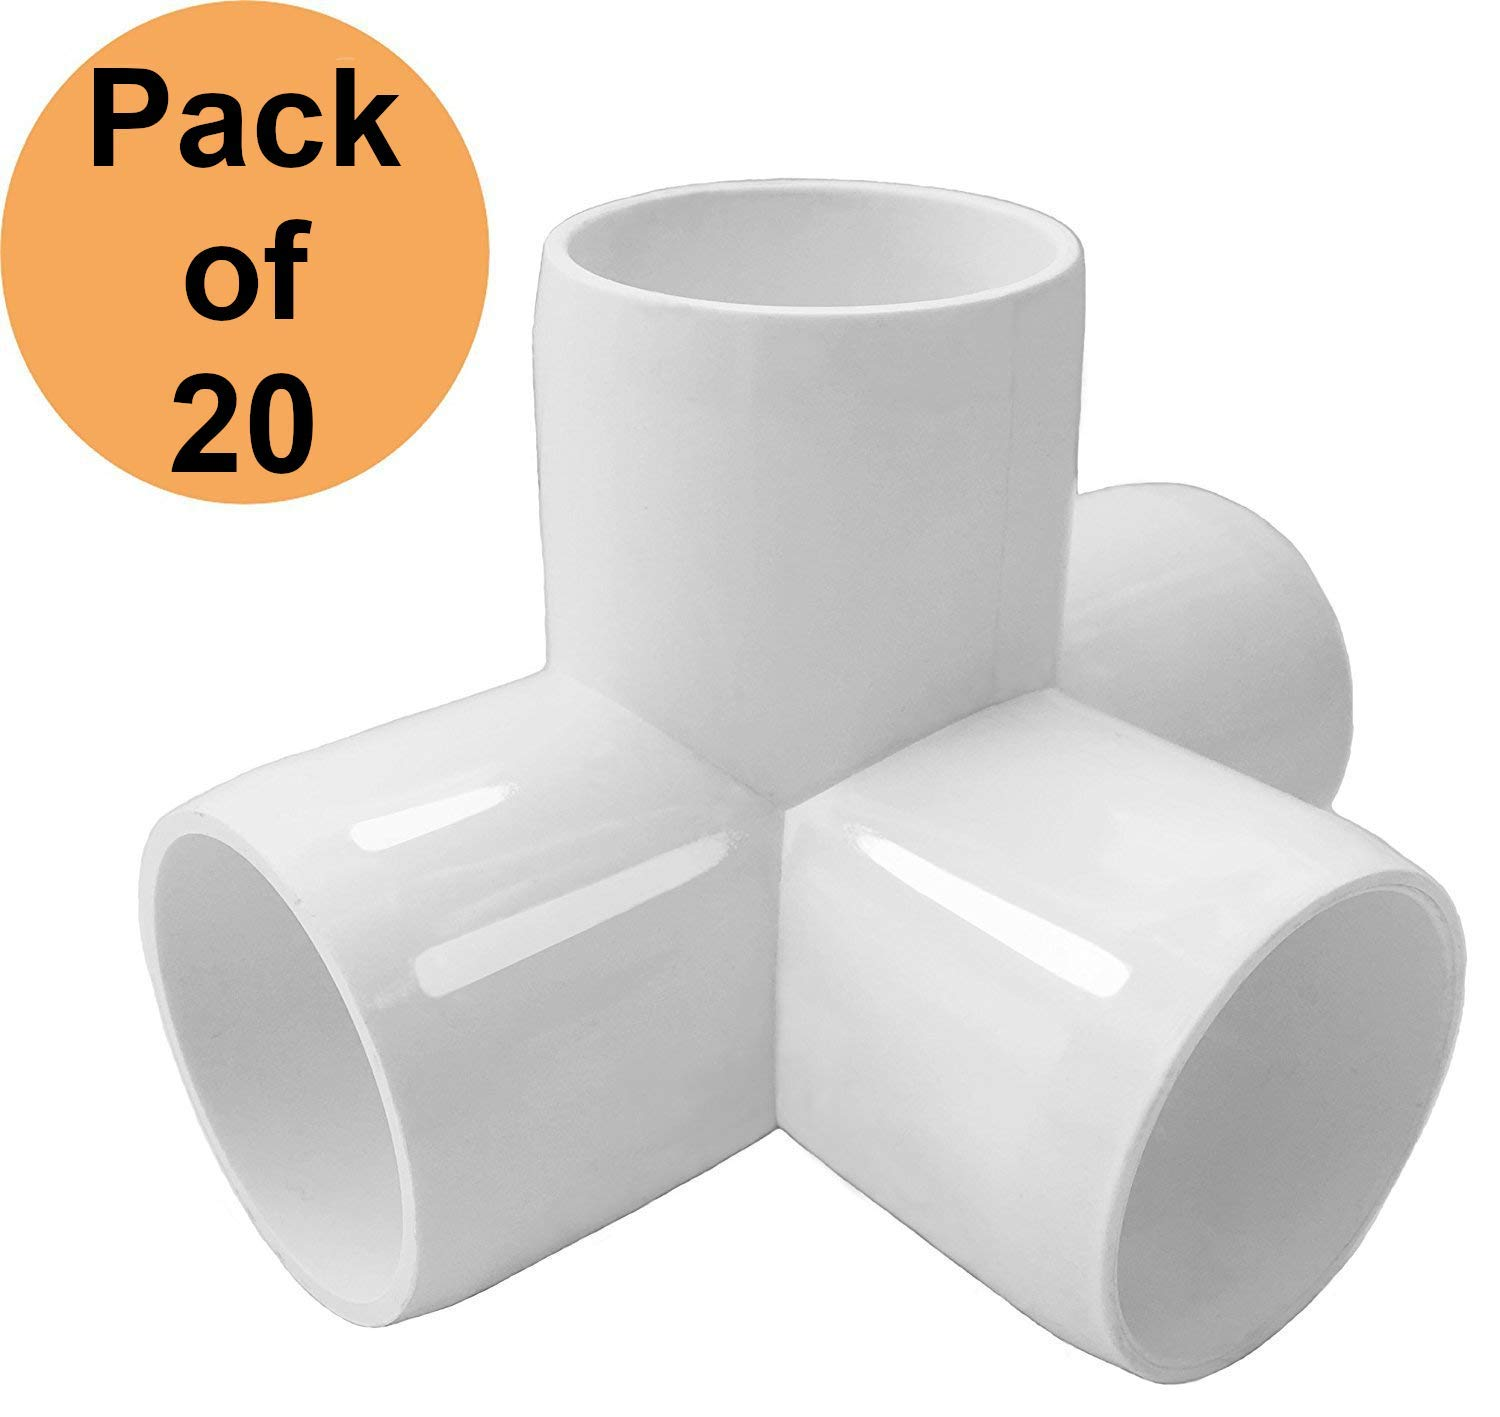 PVC FORTS 1/2 inch 4 Way Tee PVC Fitting Elbow Connector, White (Pack of 20)